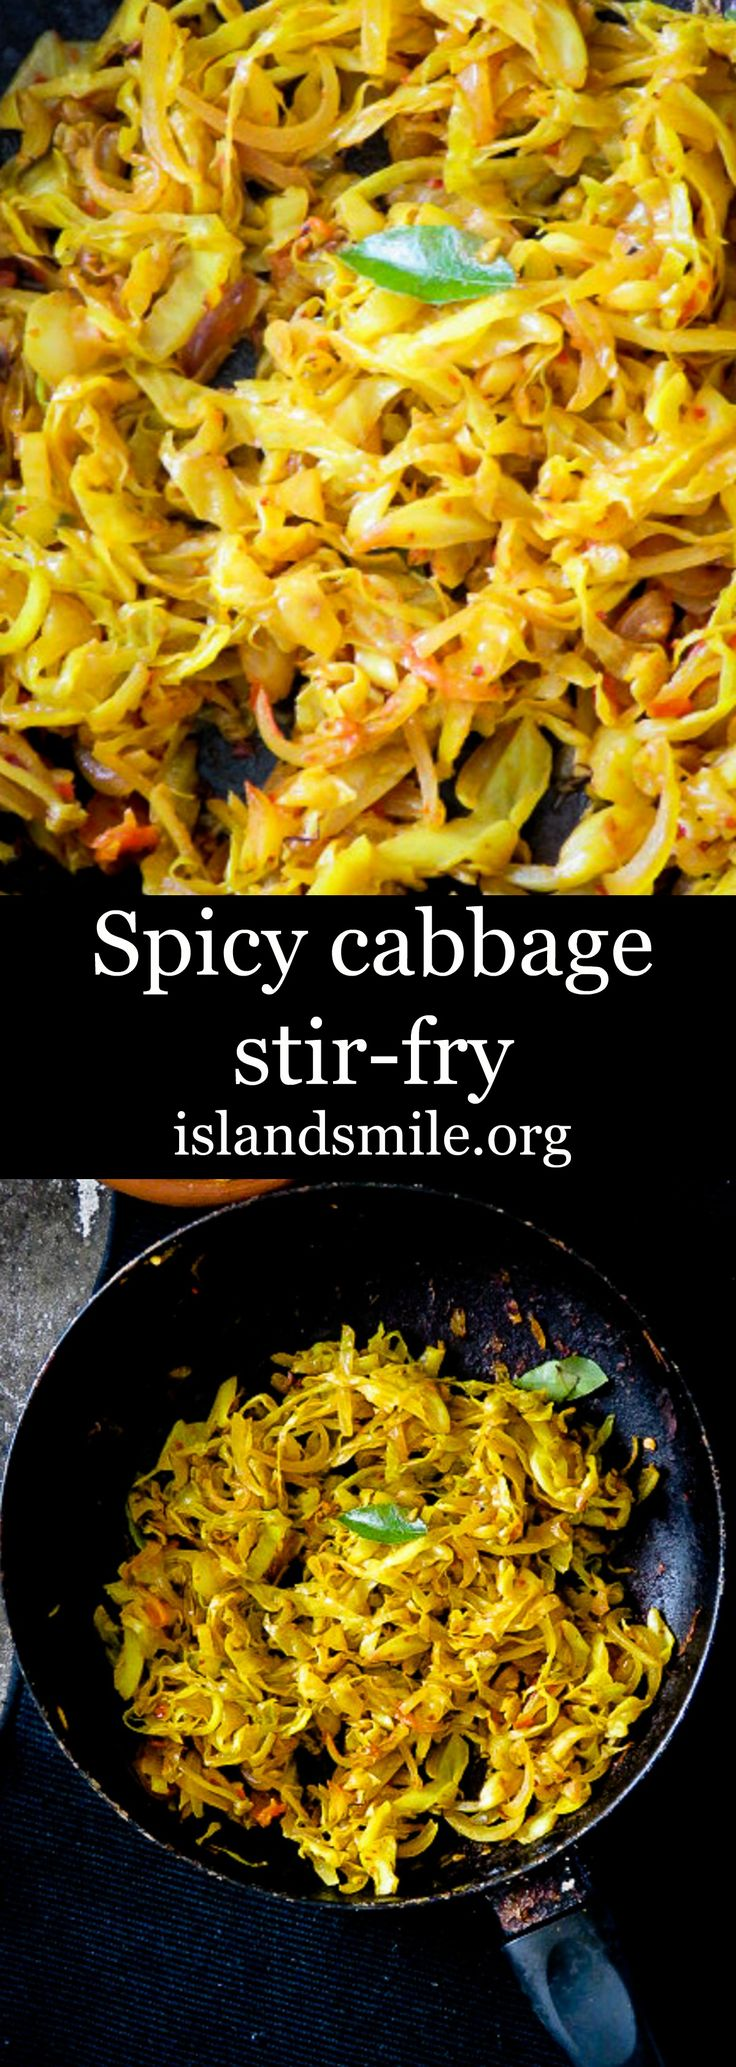 Spicy Cabbage Stir Fry - Join our Facebook group - Let's Low Carb! For more low carb recipes and info